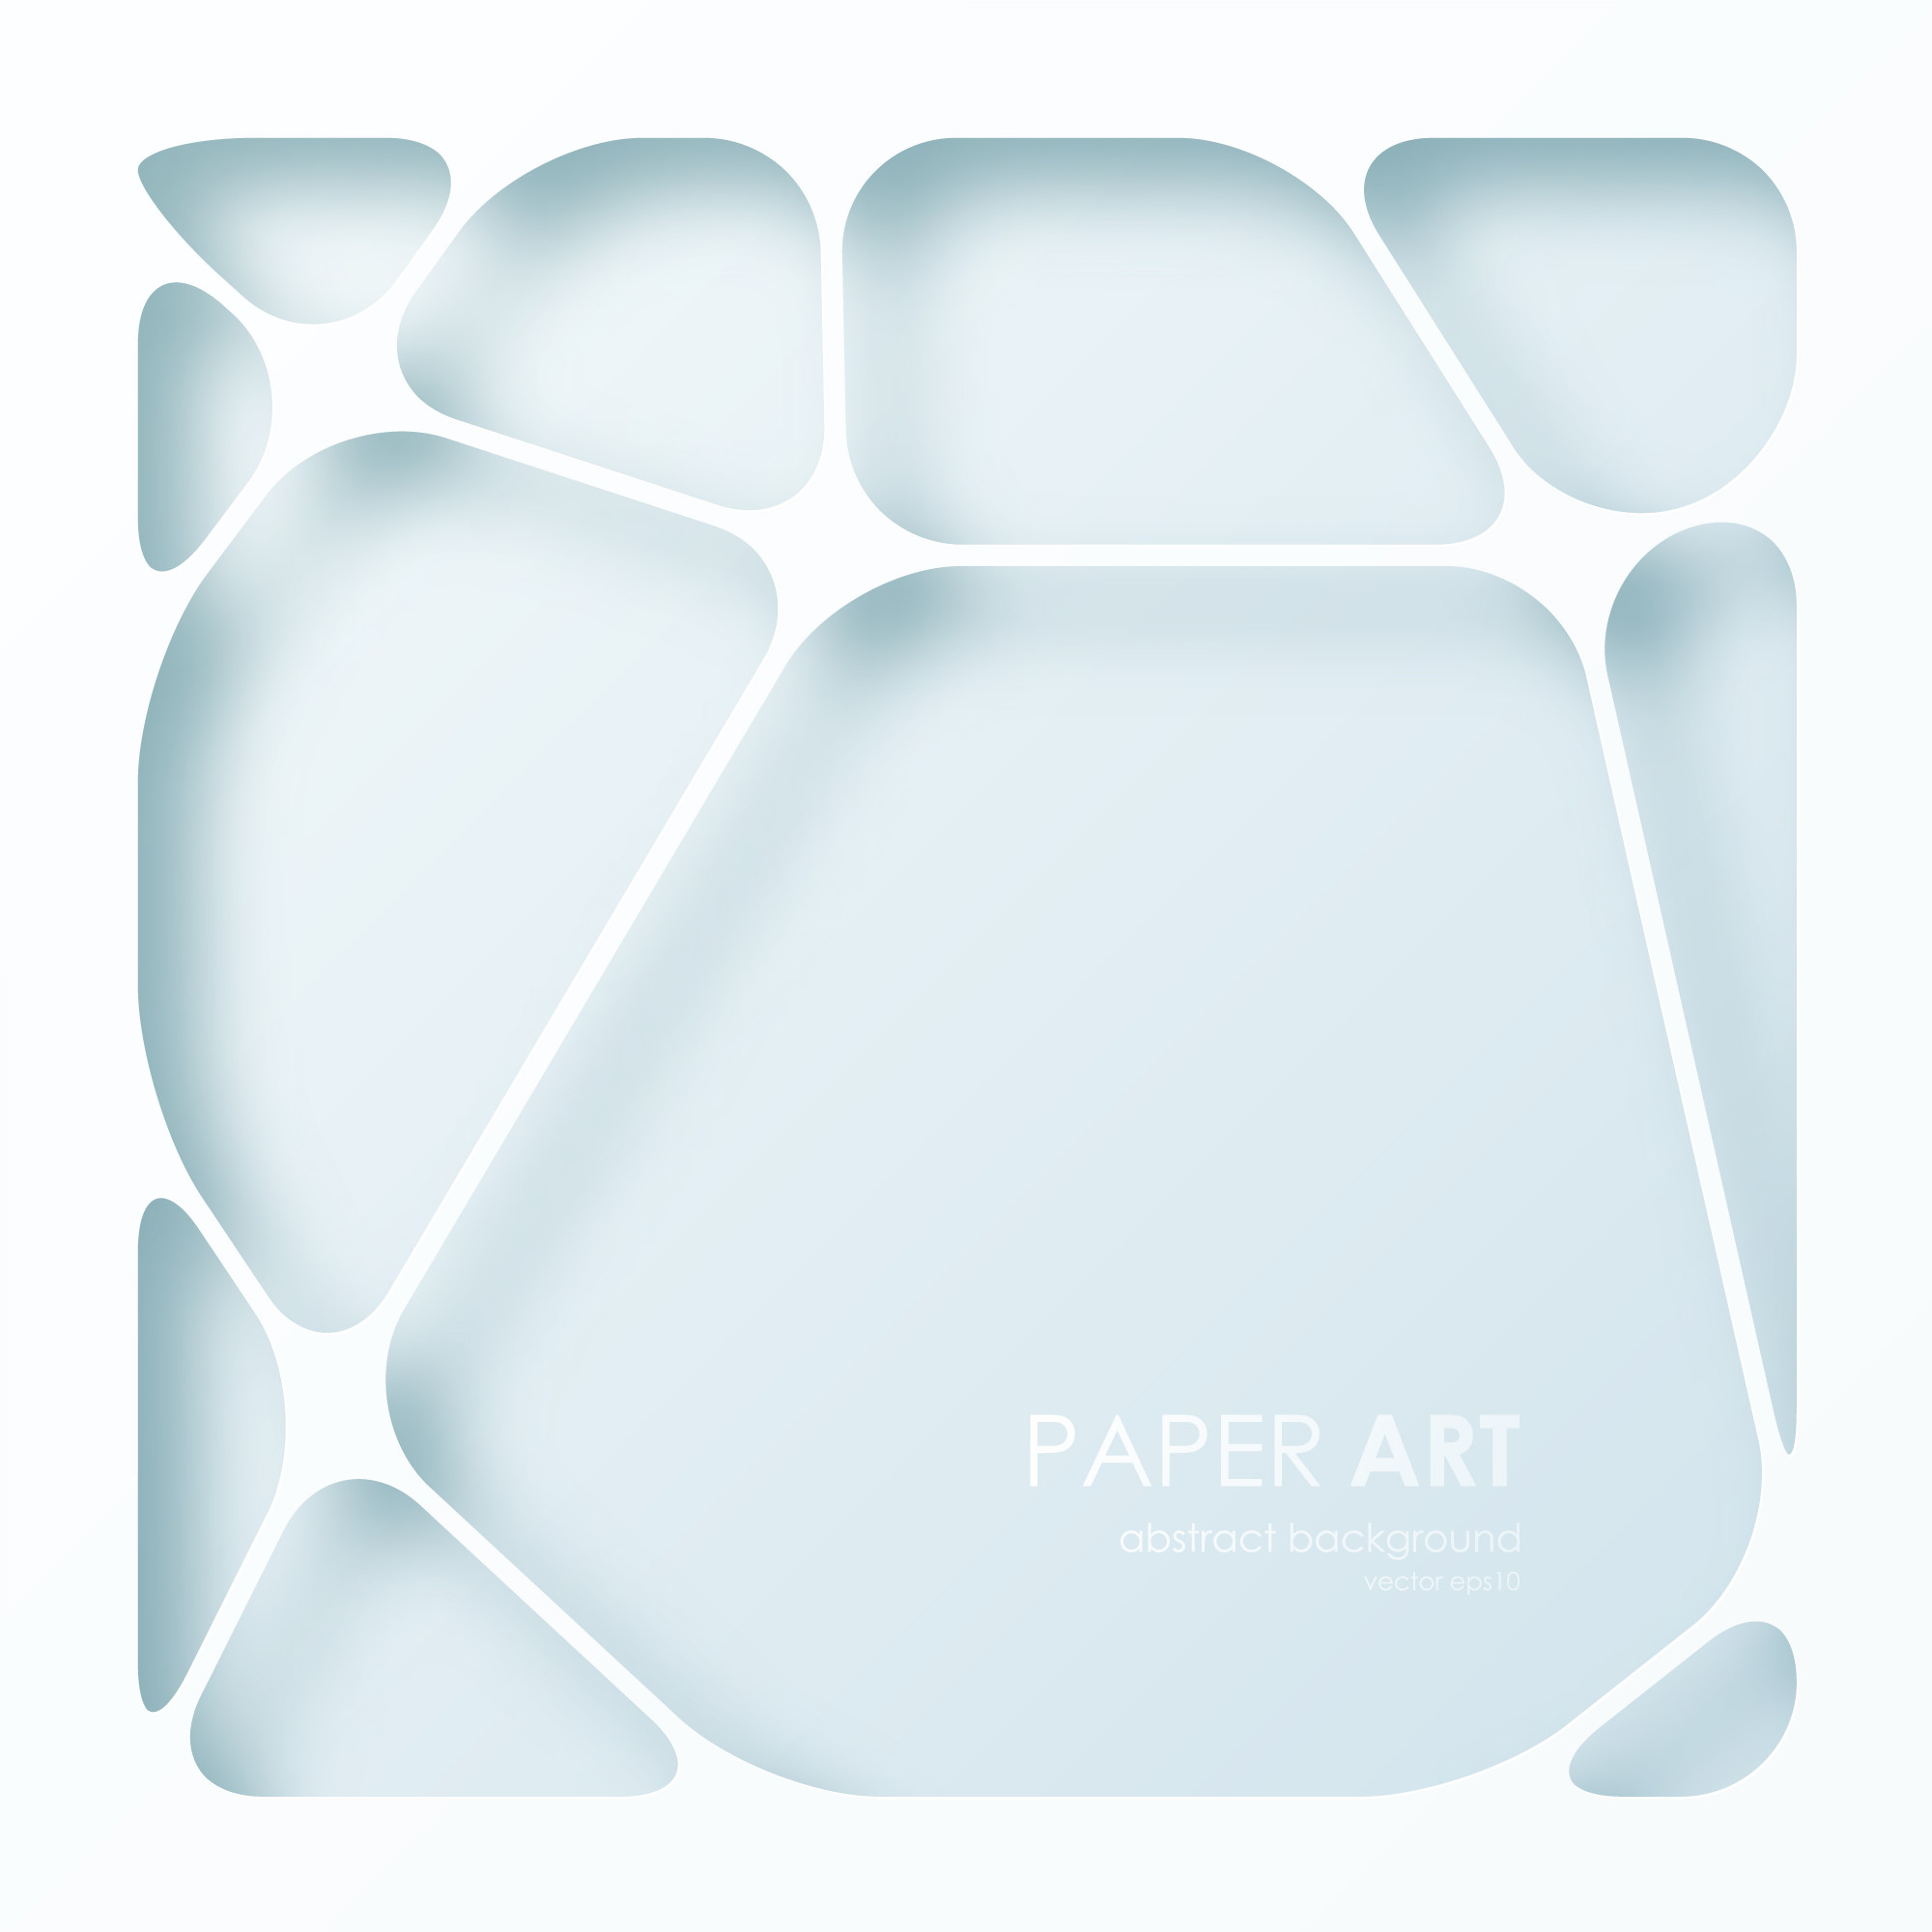 Abstract background of paper web.